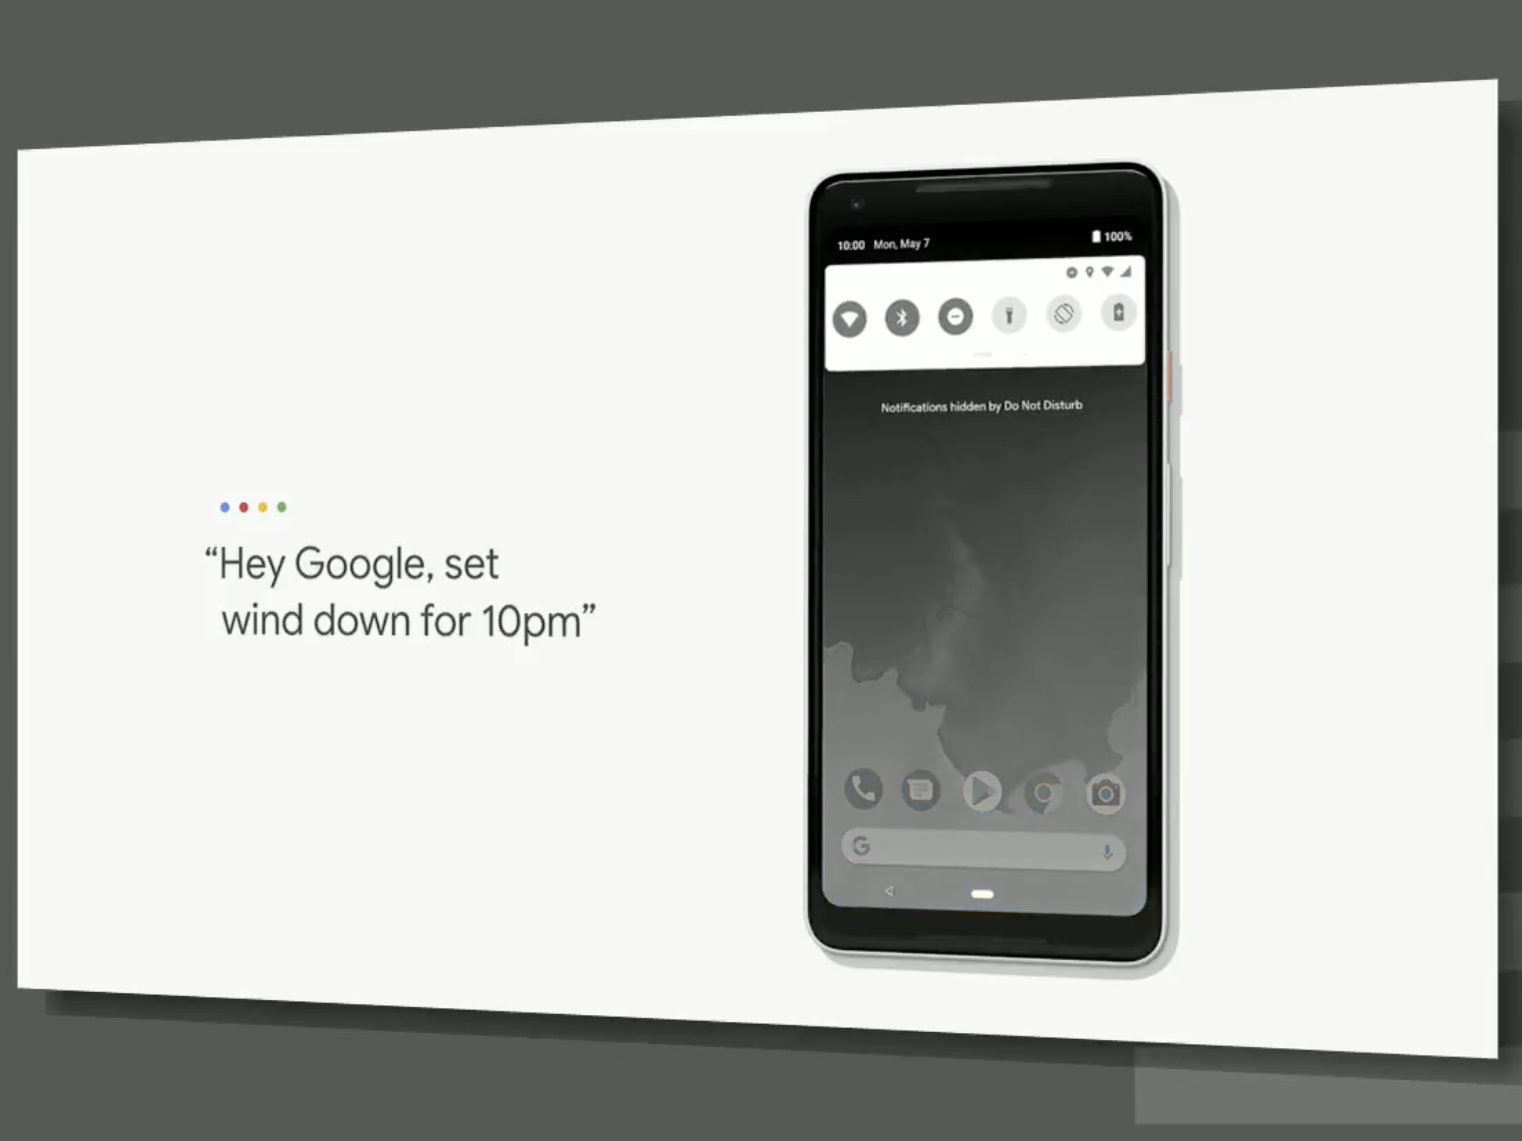 Android p 4